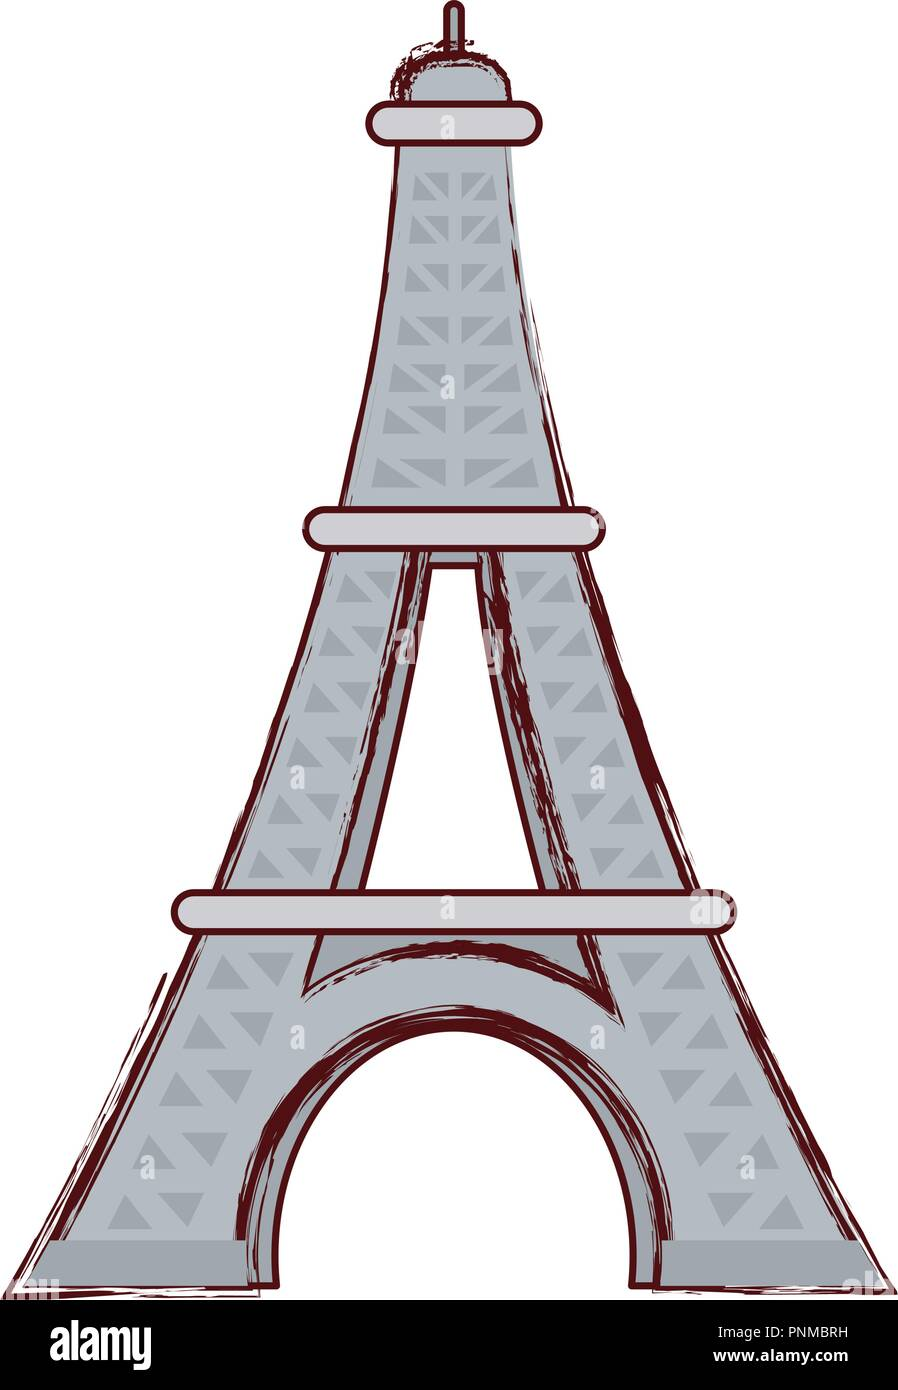 eiffel tower icon over white background, vector illustration - Stock Vector